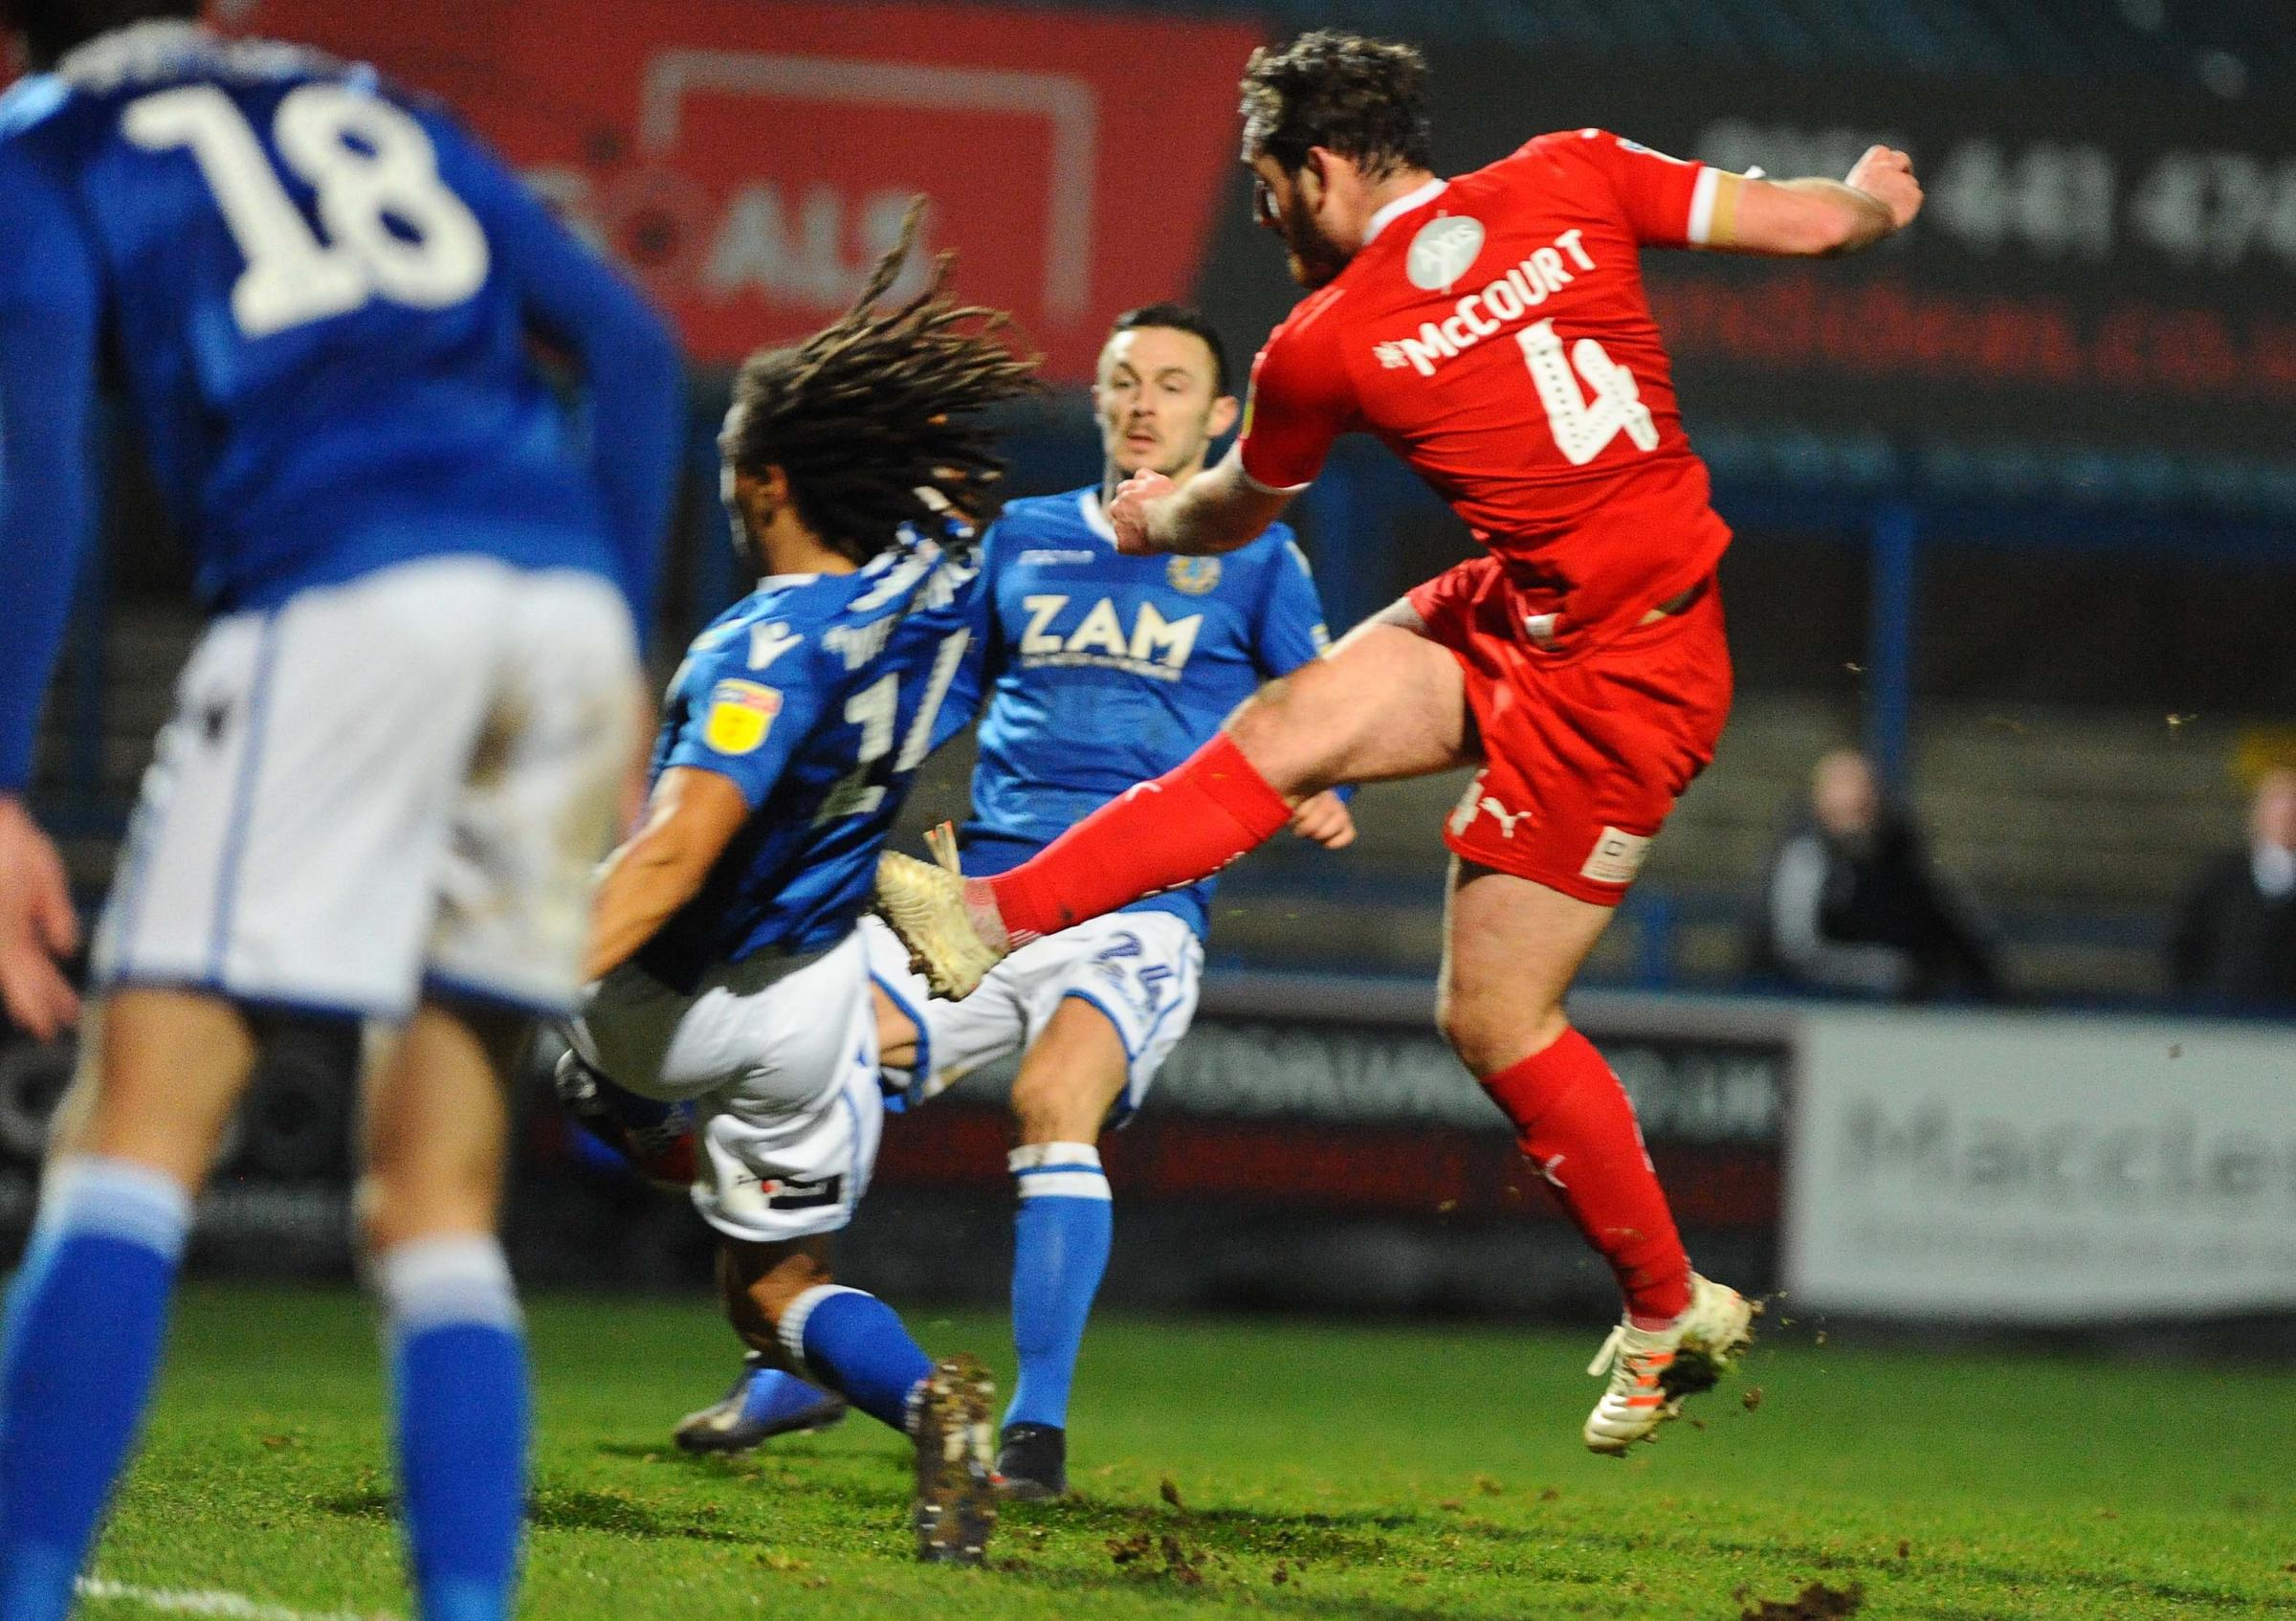 Macclesfield v STFC        Pic Dave Evans      05.01.2019.Jak McCourt fires home Town's late winner..